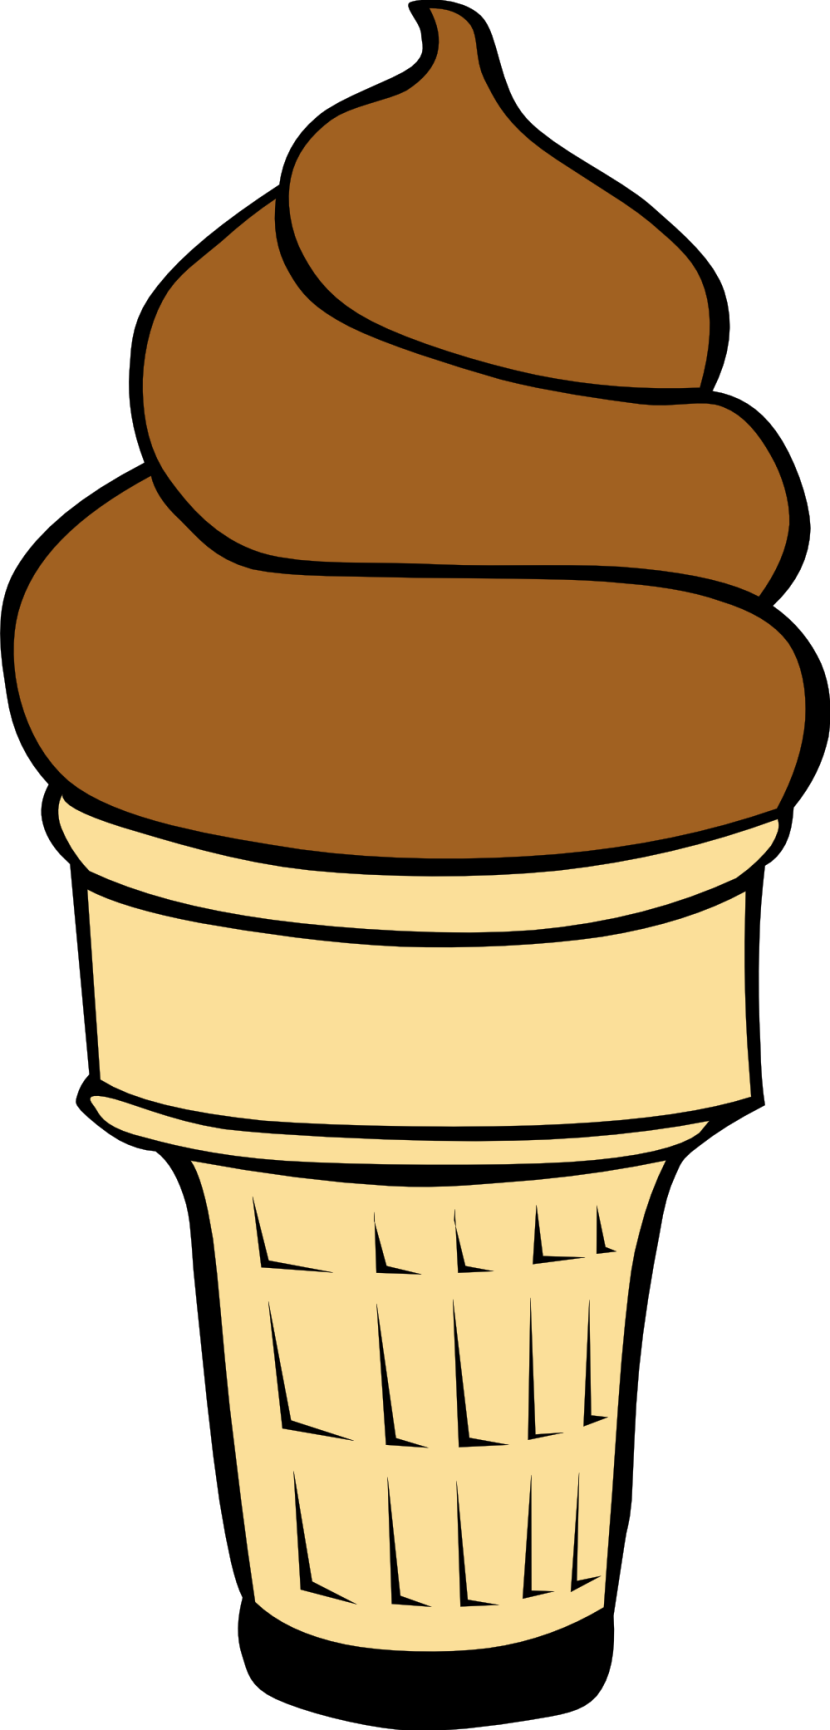 Empty Ice Cream Cone Clipart Free Clipart Images